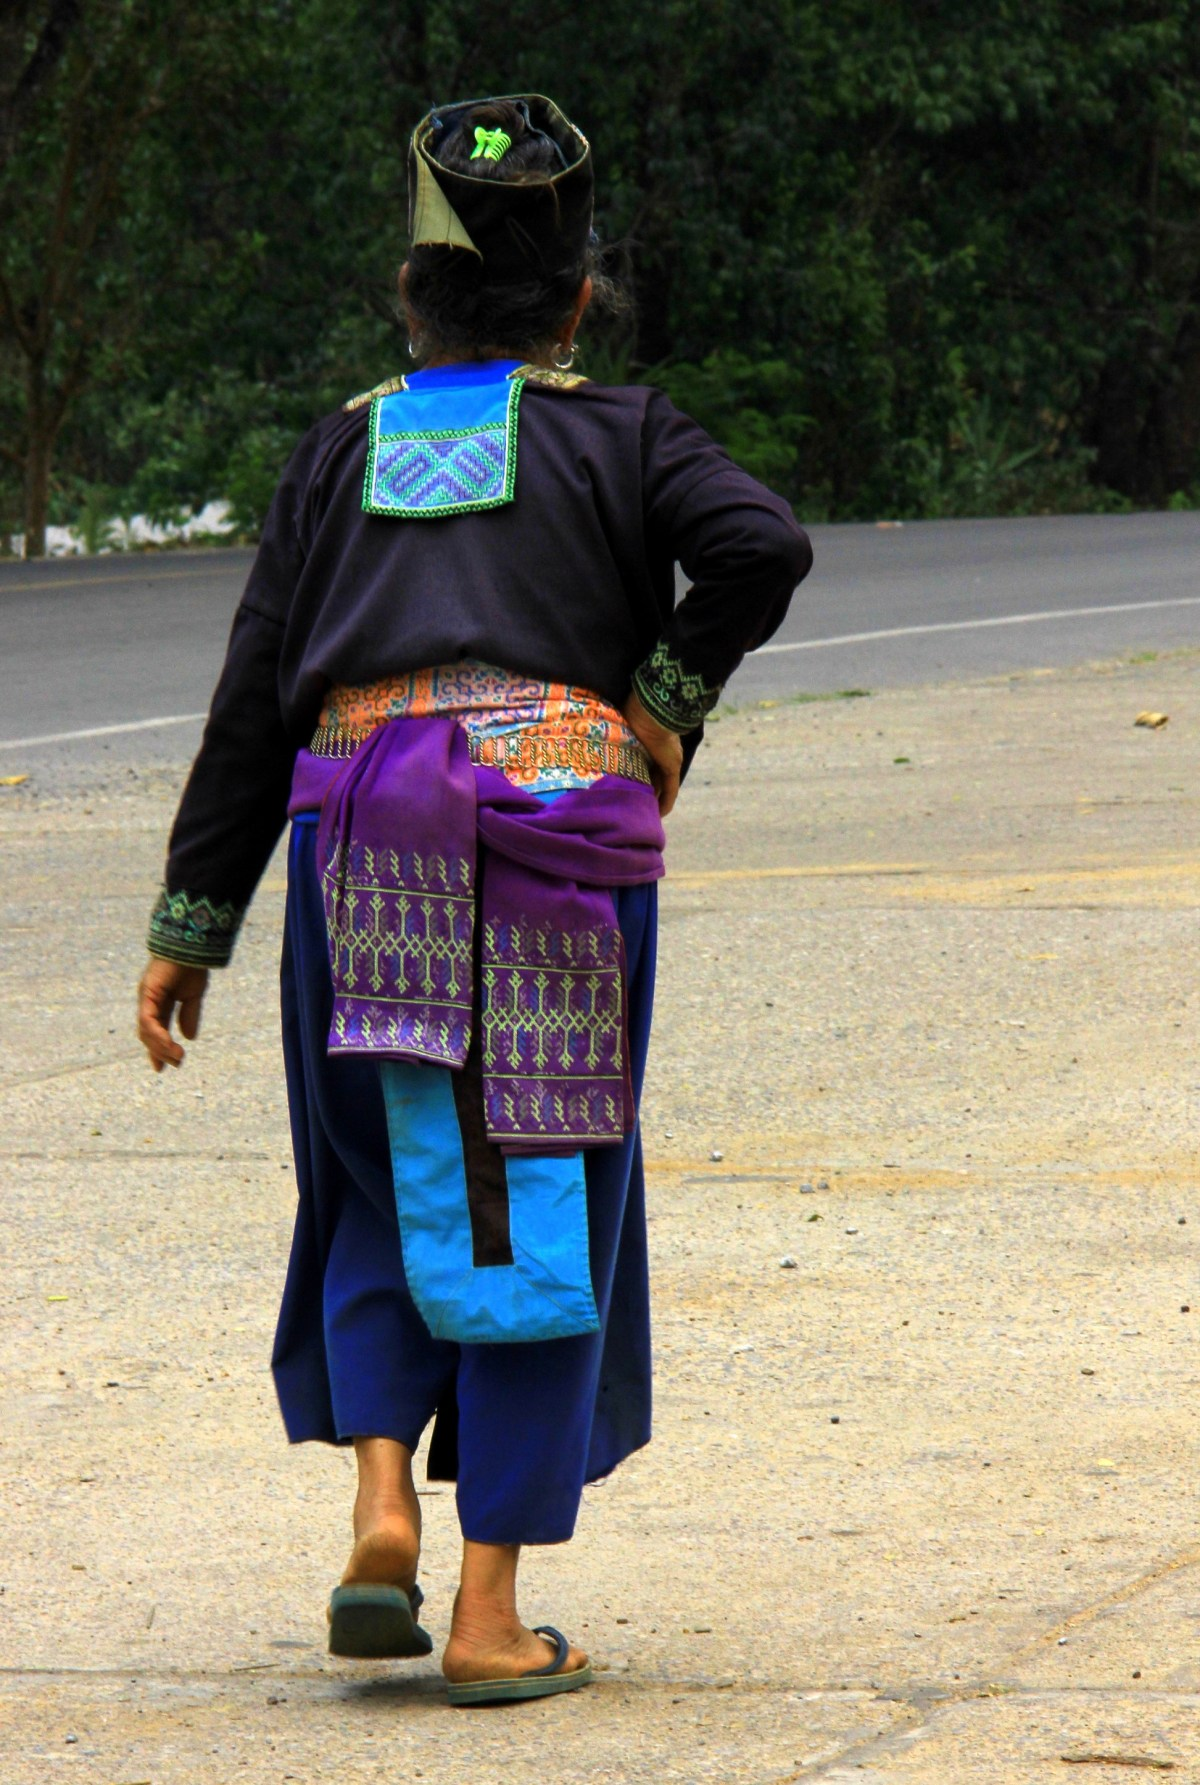 Thai hill tribes depend mostly on tourism